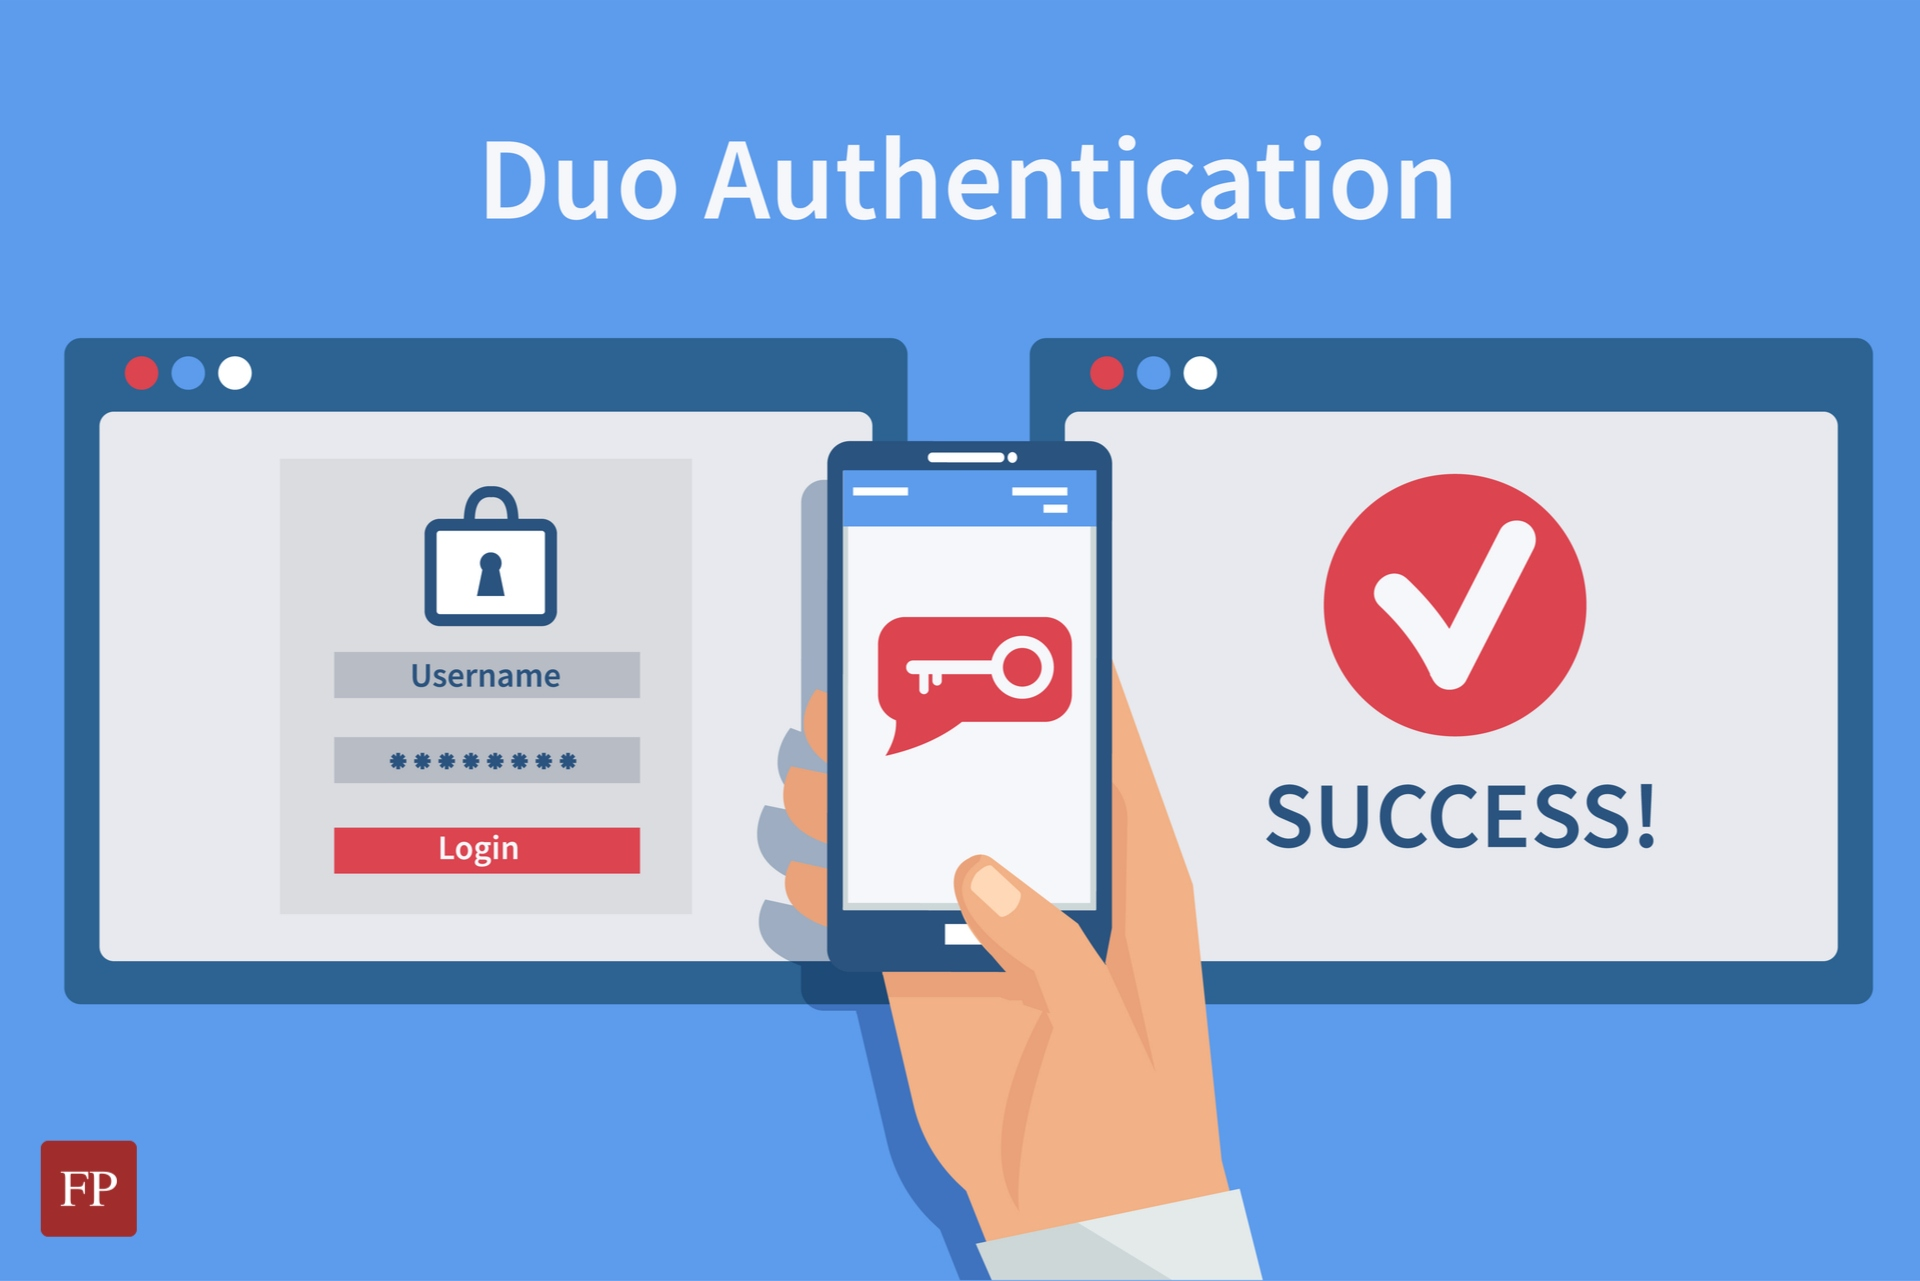 two-factor authentication 3 August 29, 2020